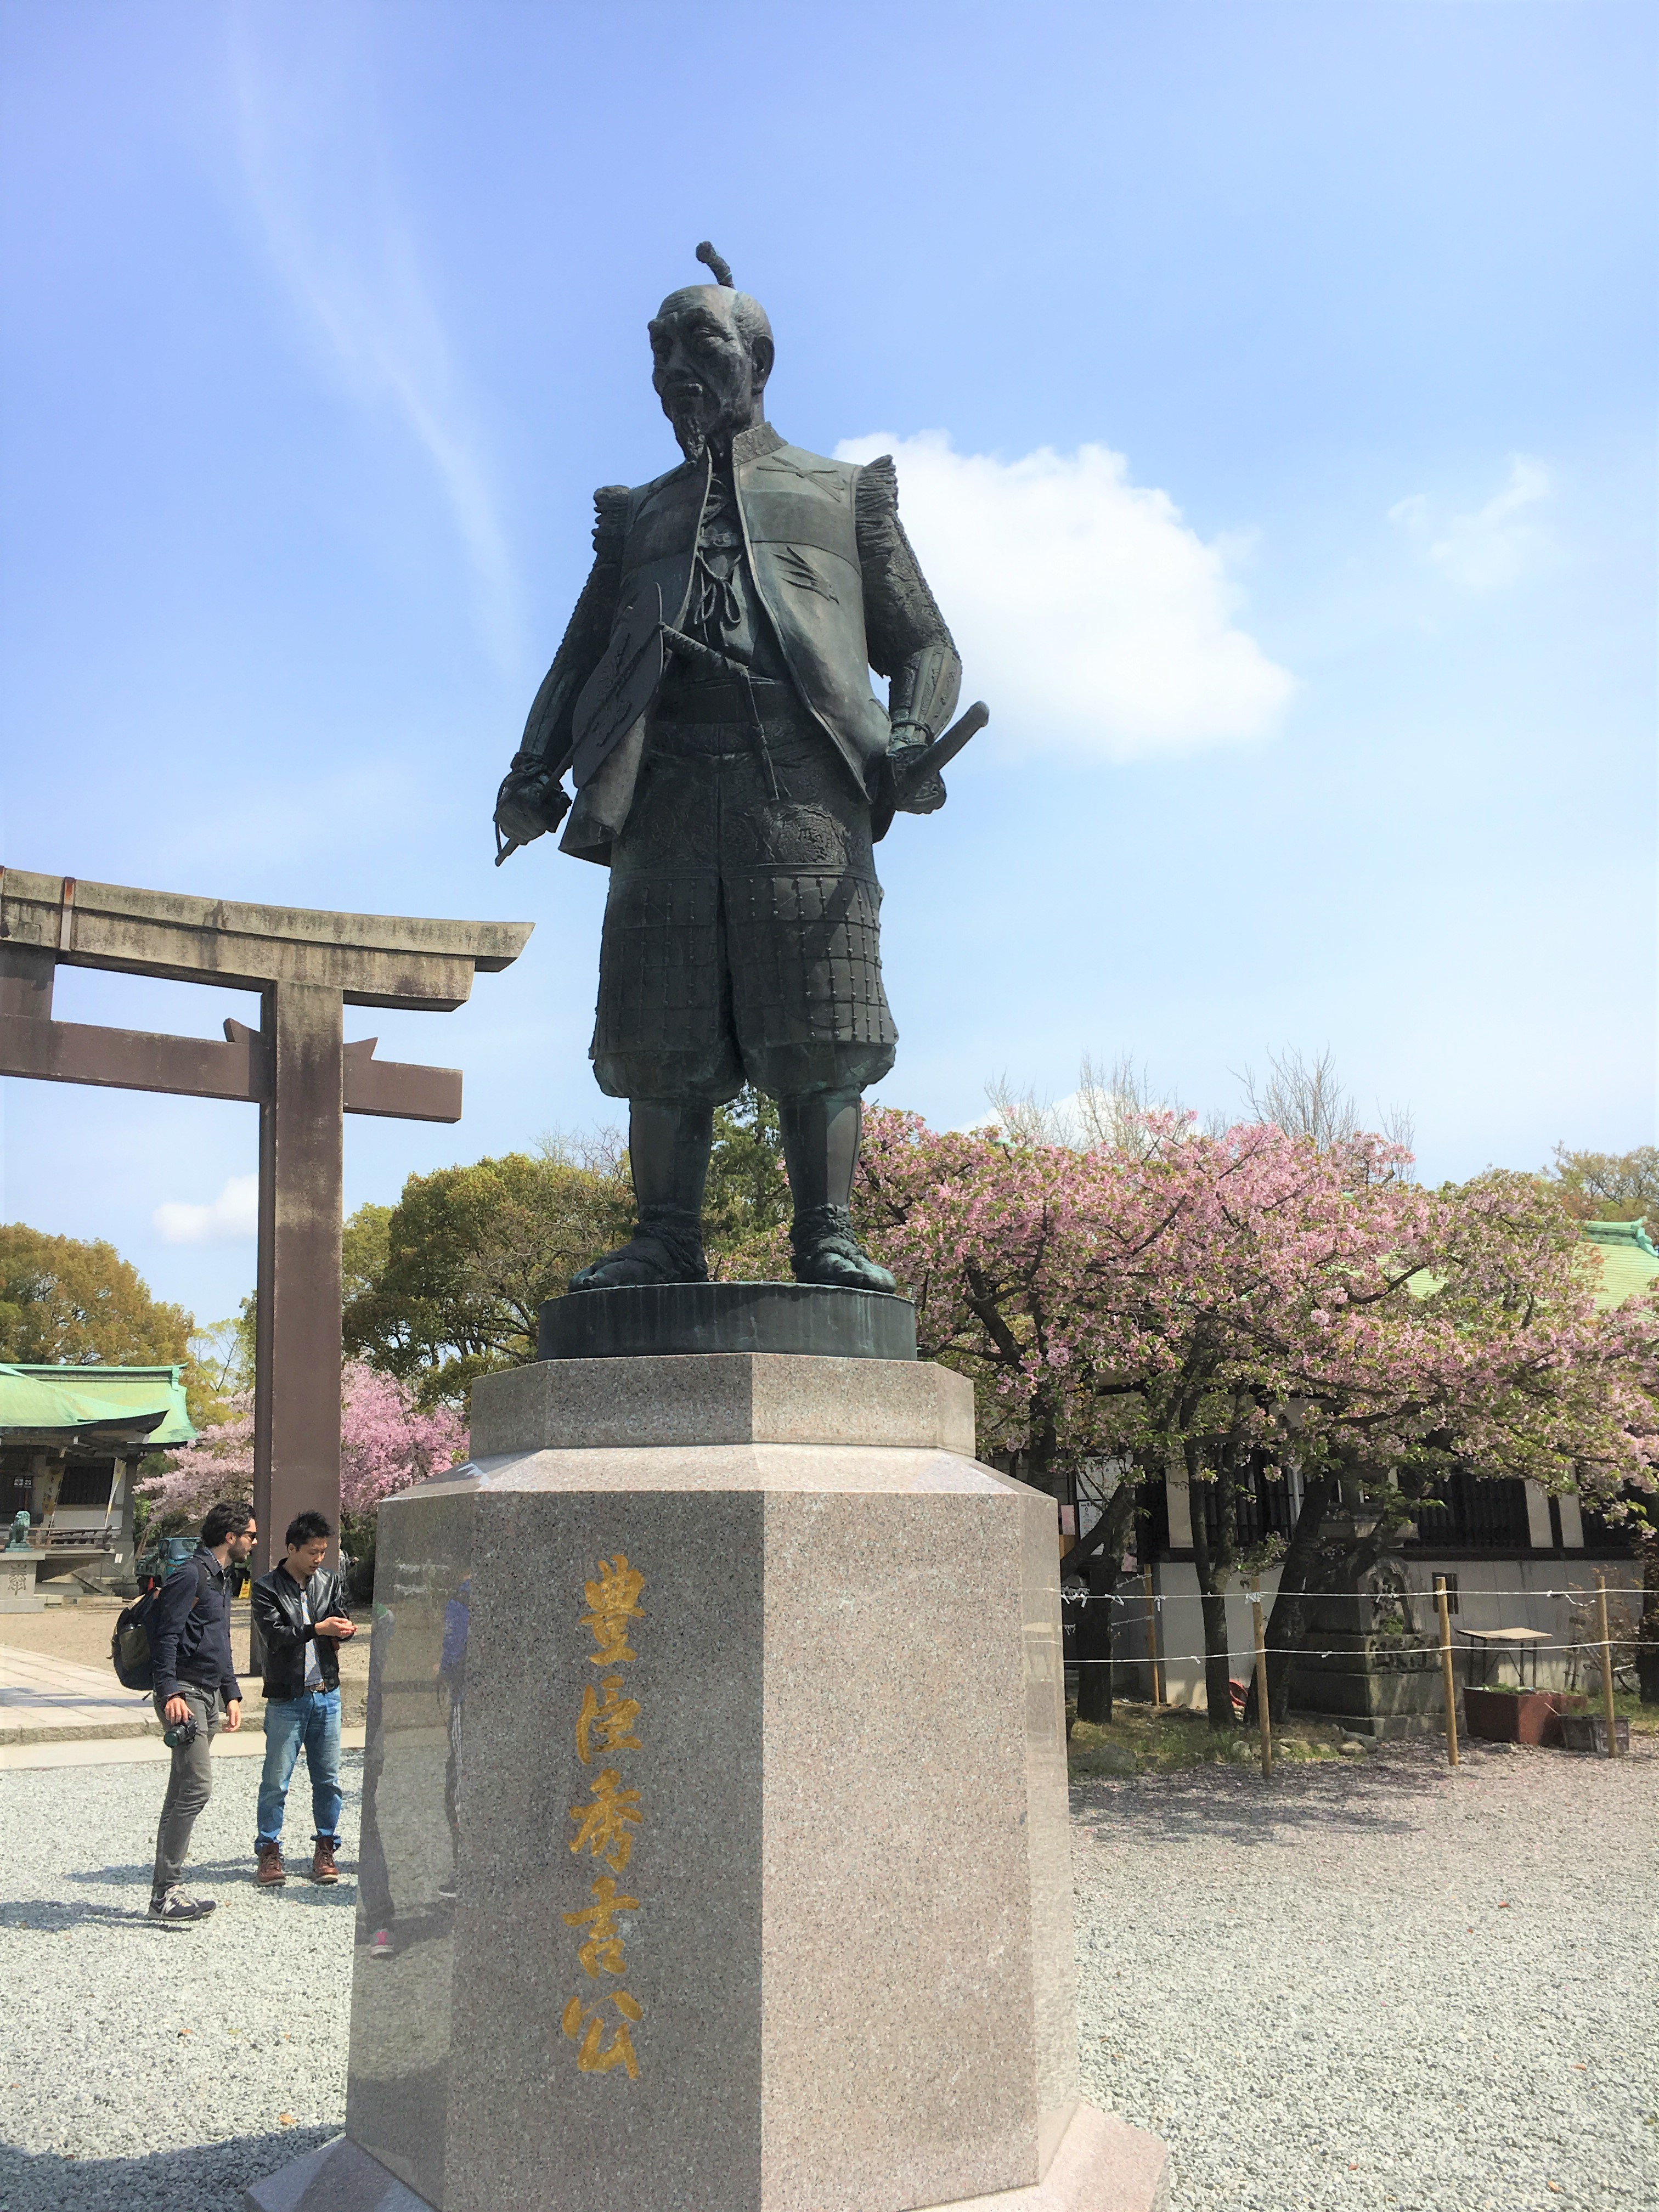 statue of hideyoshi with cherry blossoms in background